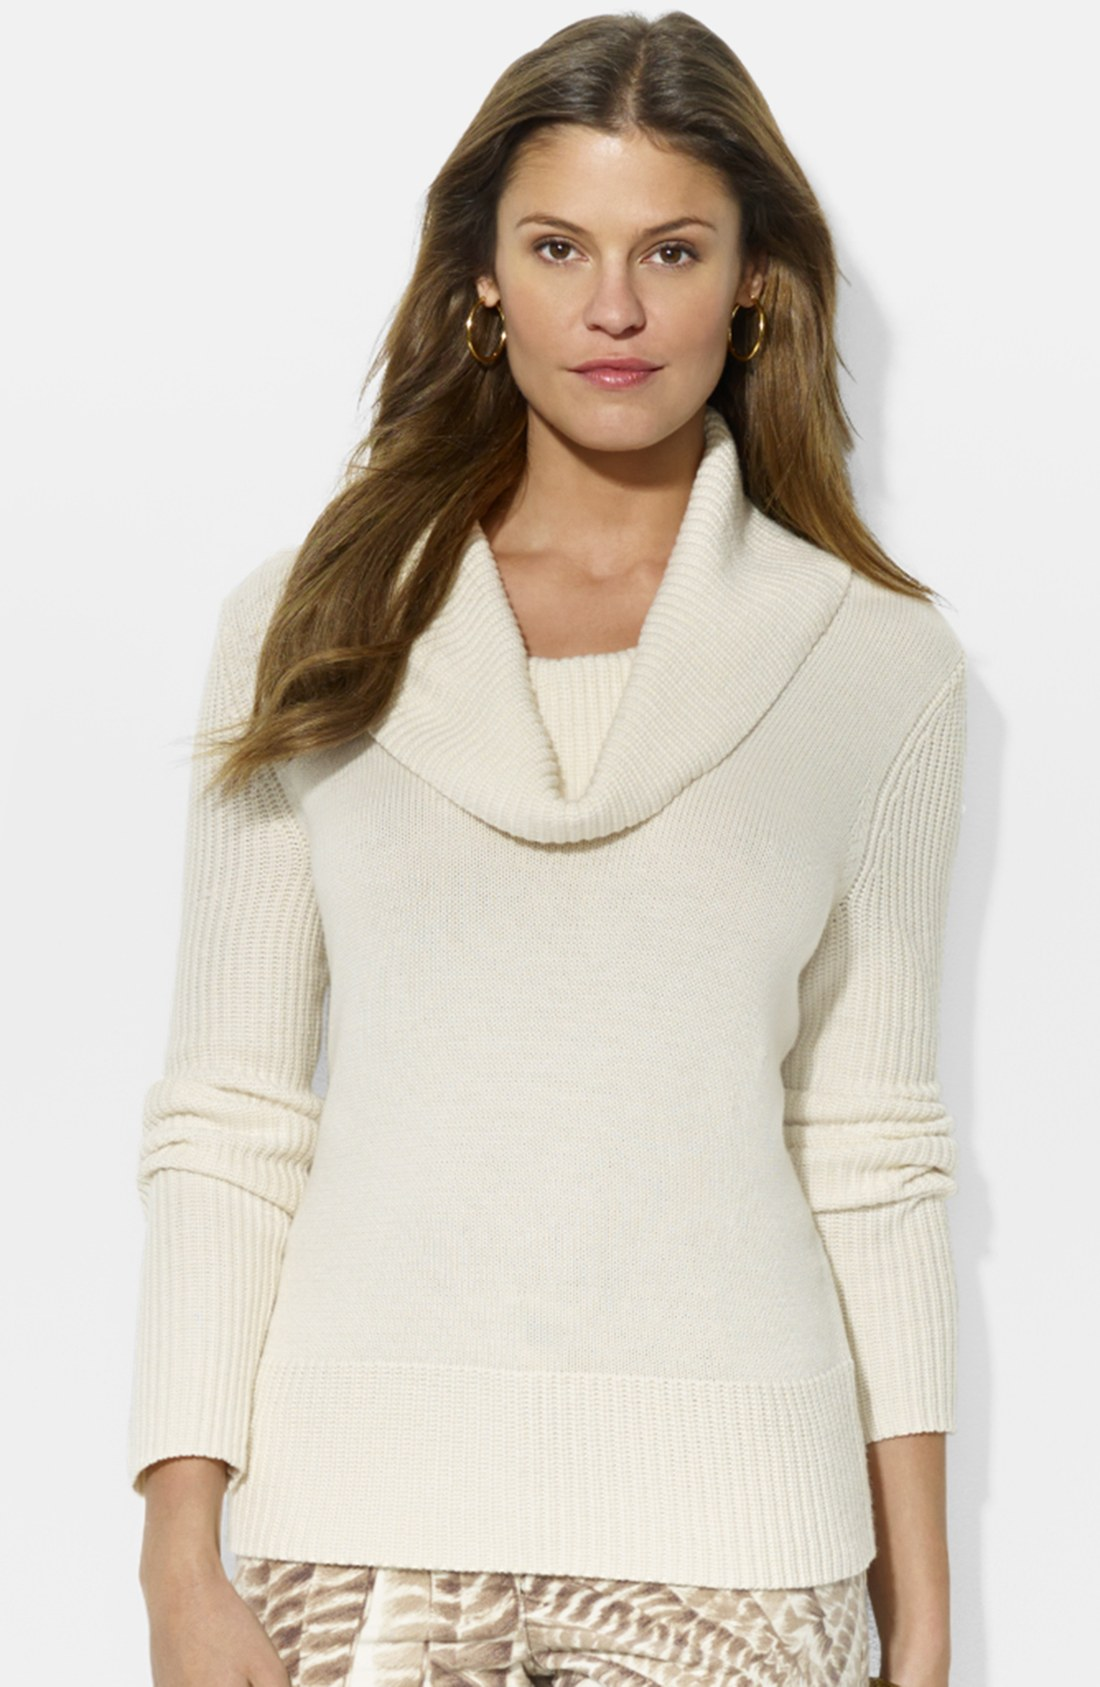 Shop our Collection of Women's Cowl Neck Sweaters at trueiuptaf.gq for the Latest Designer Brands & Styles. FREE SHIPPING AVAILABLE!